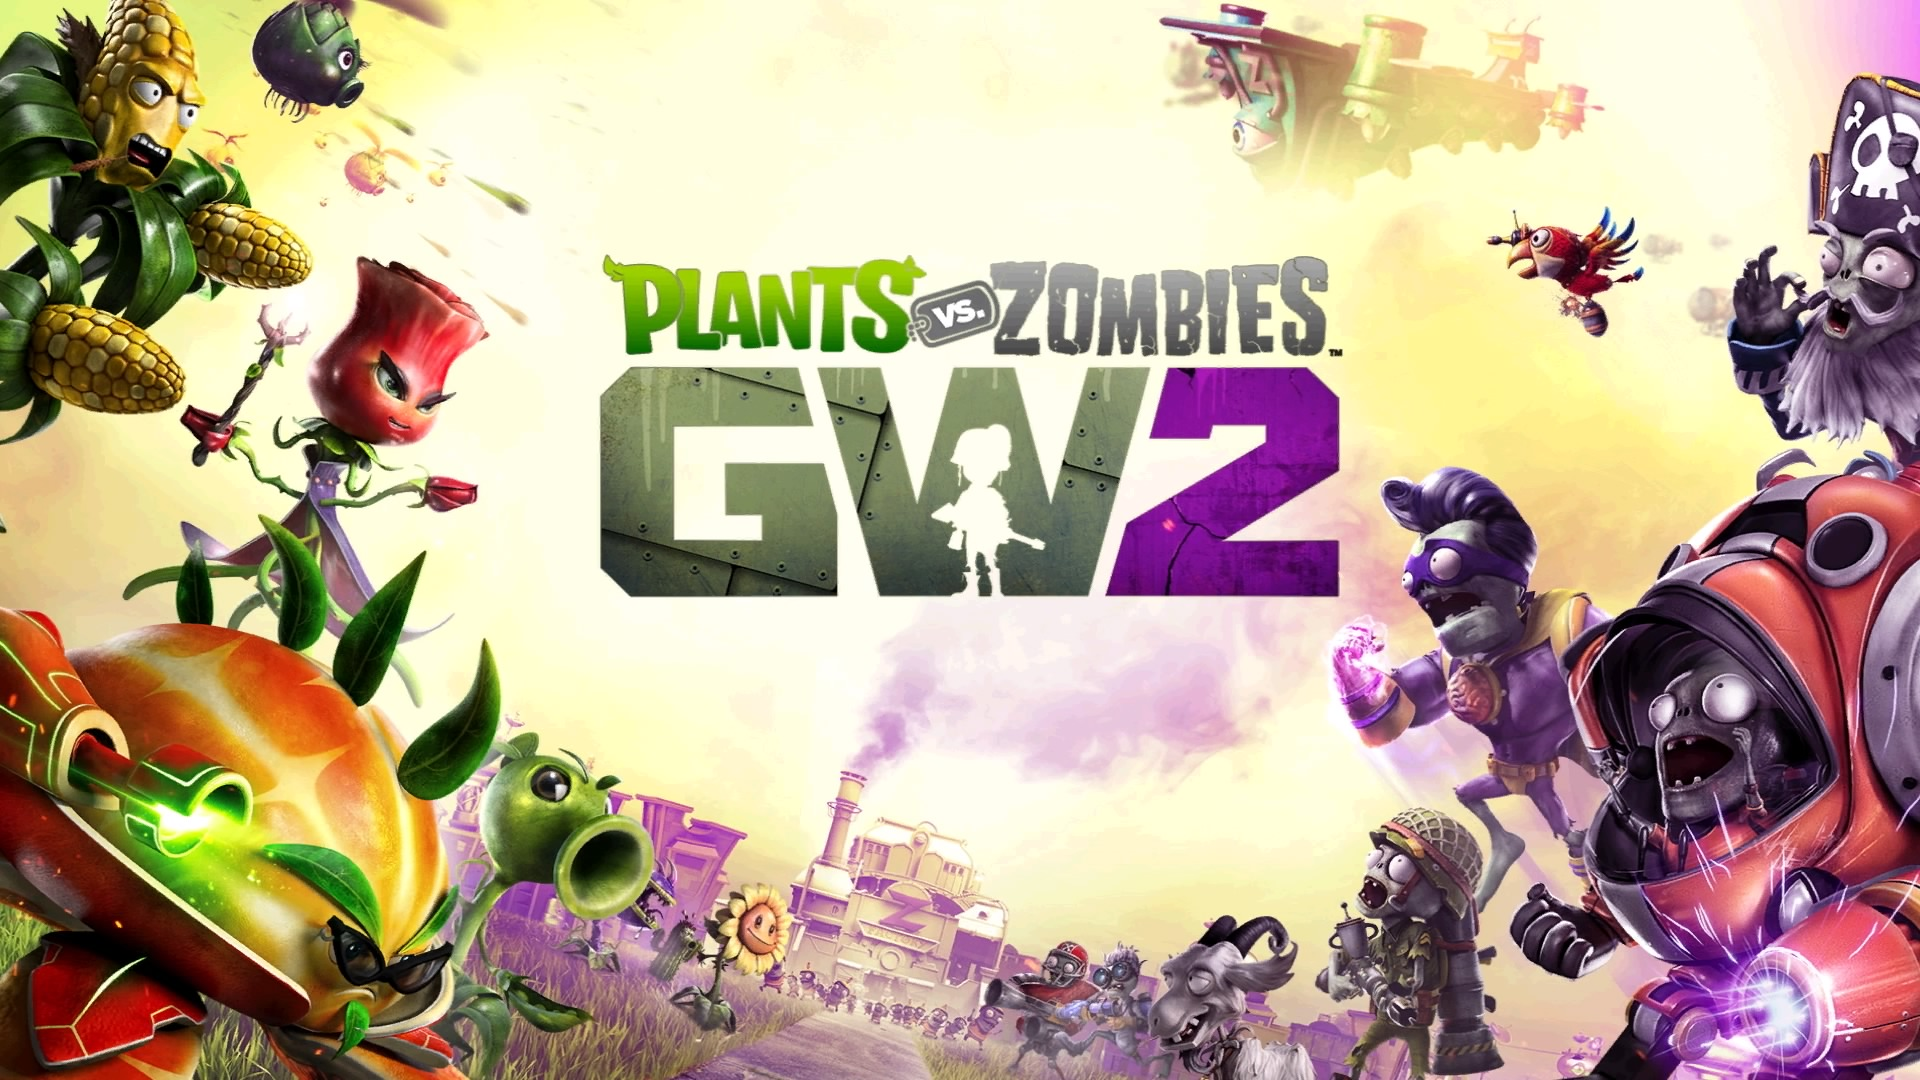 Image result for plants vs zombies garden warfare 2 1920x1080